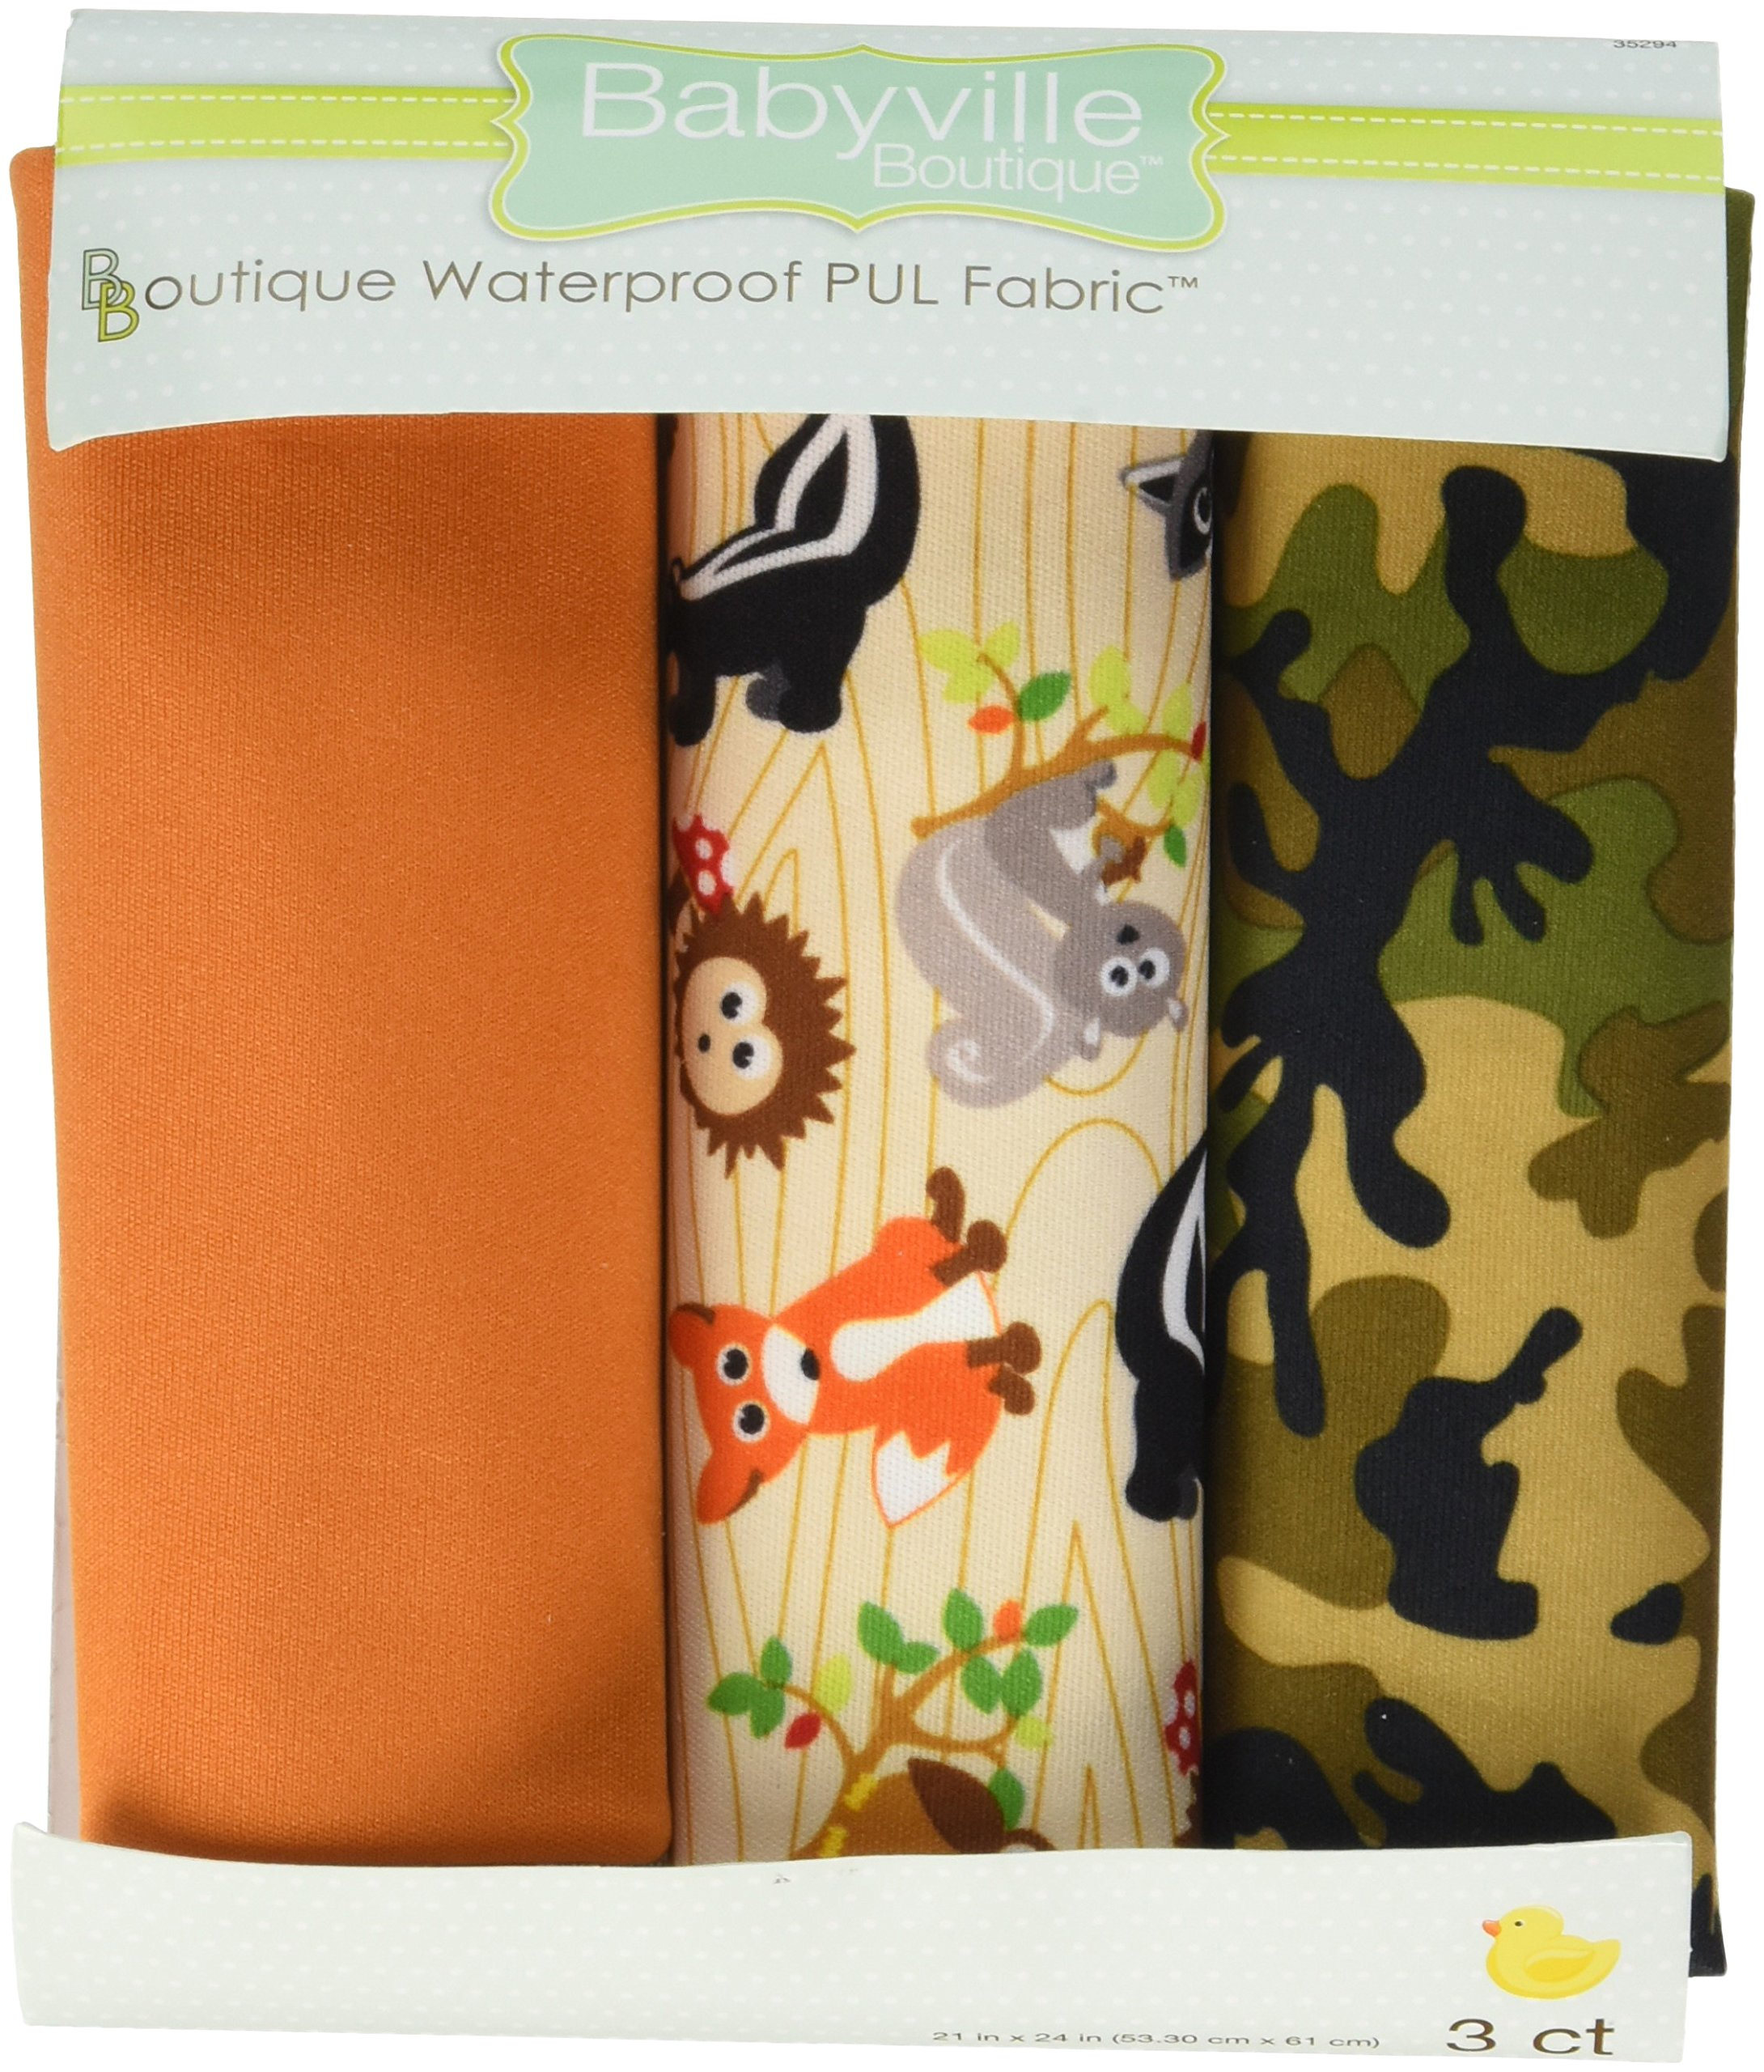 Dritz Babyville 21 by 24-Inch PUL Waterproof Diaper Fabric Cuts, Forest Friends/Camouflage, 3-Pack by Dritz